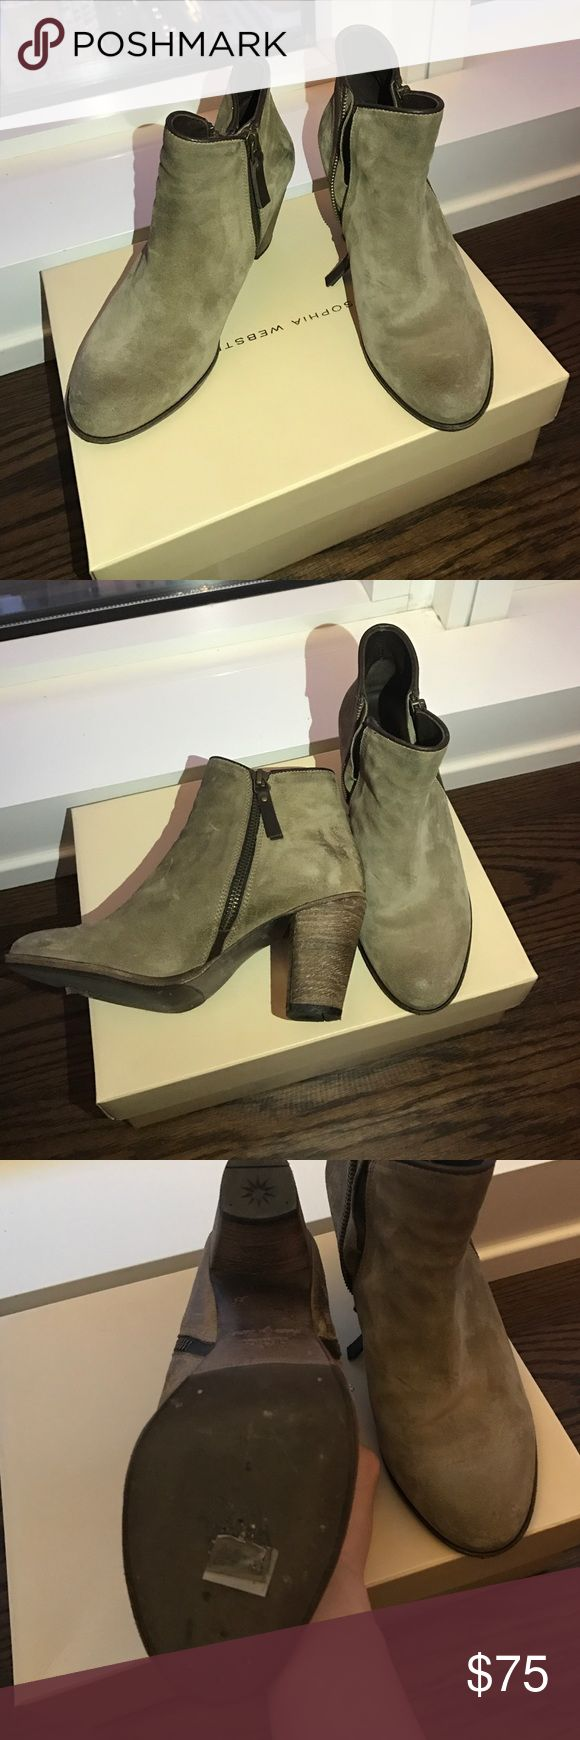 NDC ankle boots US 5 Almost new. Suede leather & handmade. I have only wore them once. Will be shipped in double boxes. ndc Shoes Ankle Boots & Booties